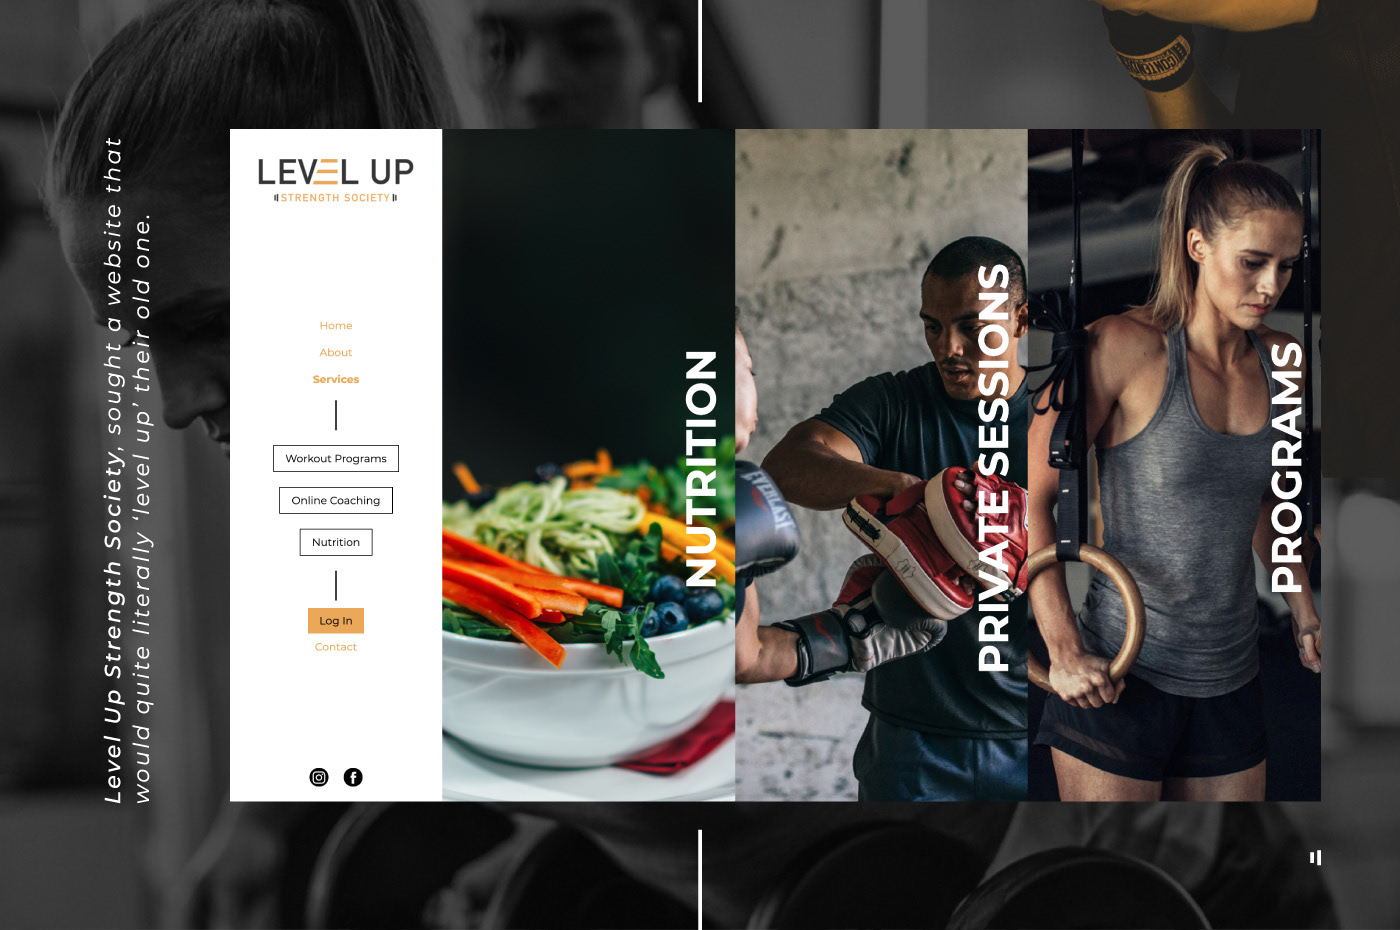 Level Up Strength Society website design and development by Wink Digital